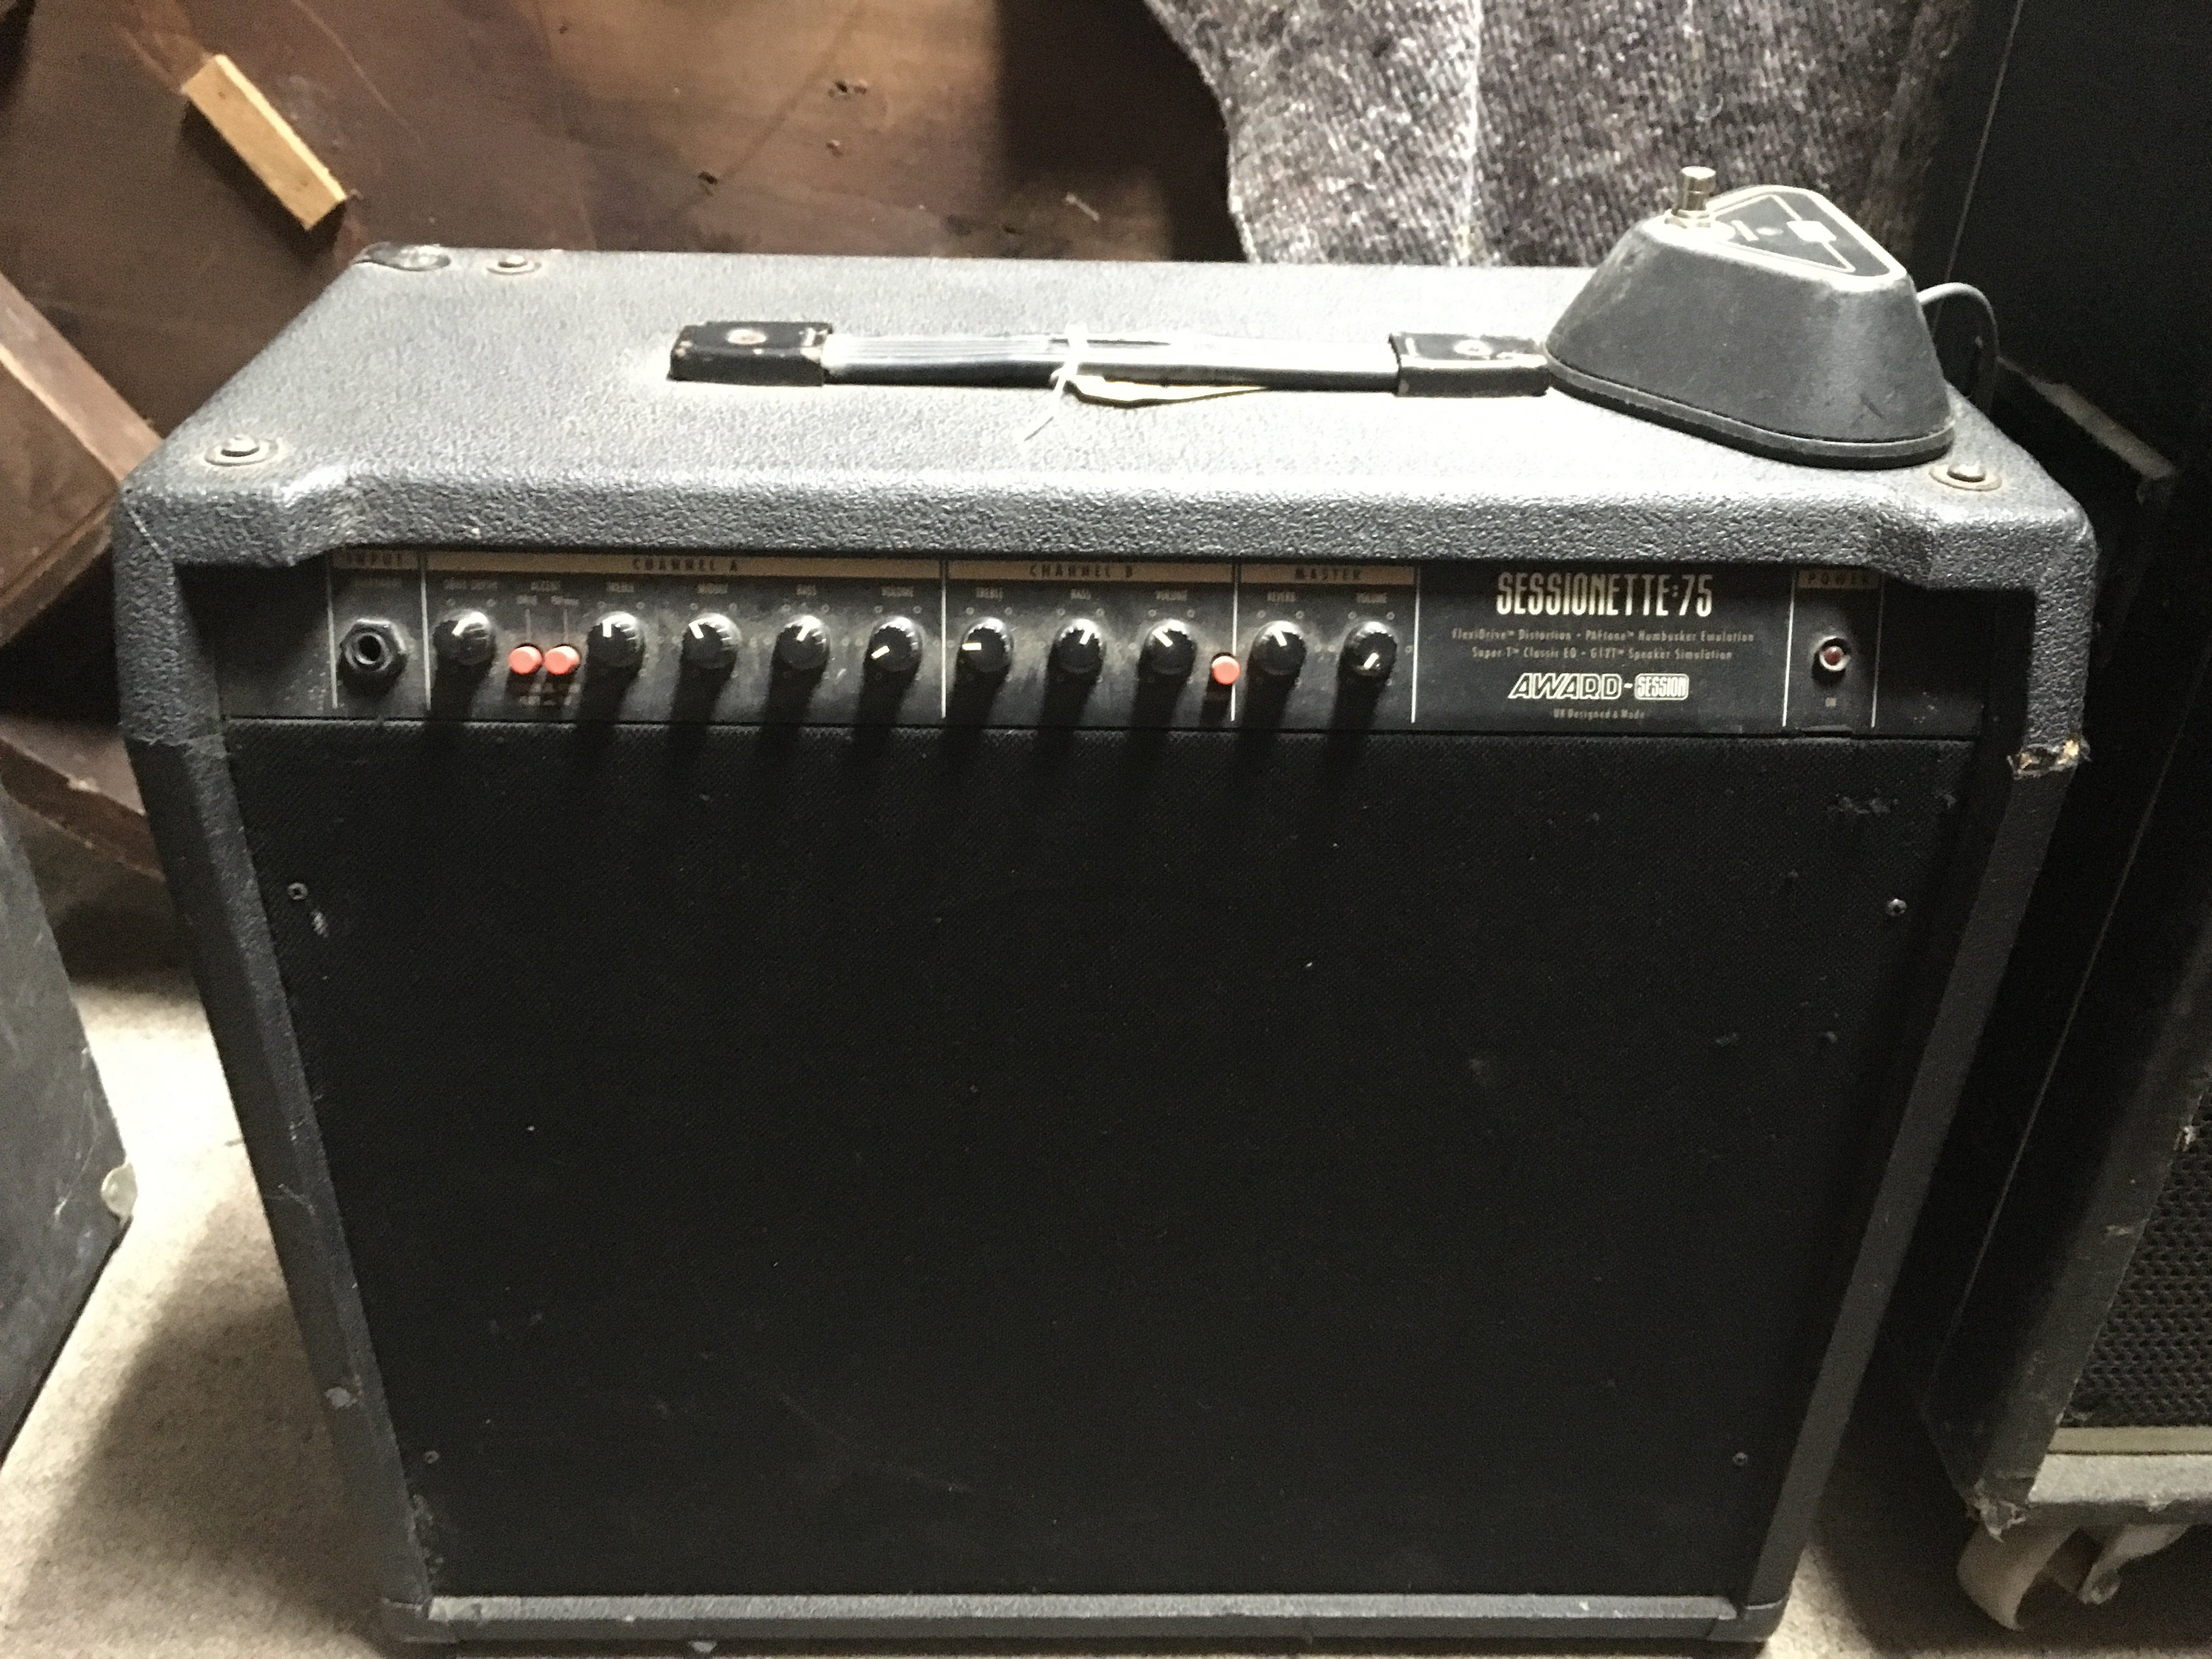 A Sessionette 75 guitar amplifier with footswitch.